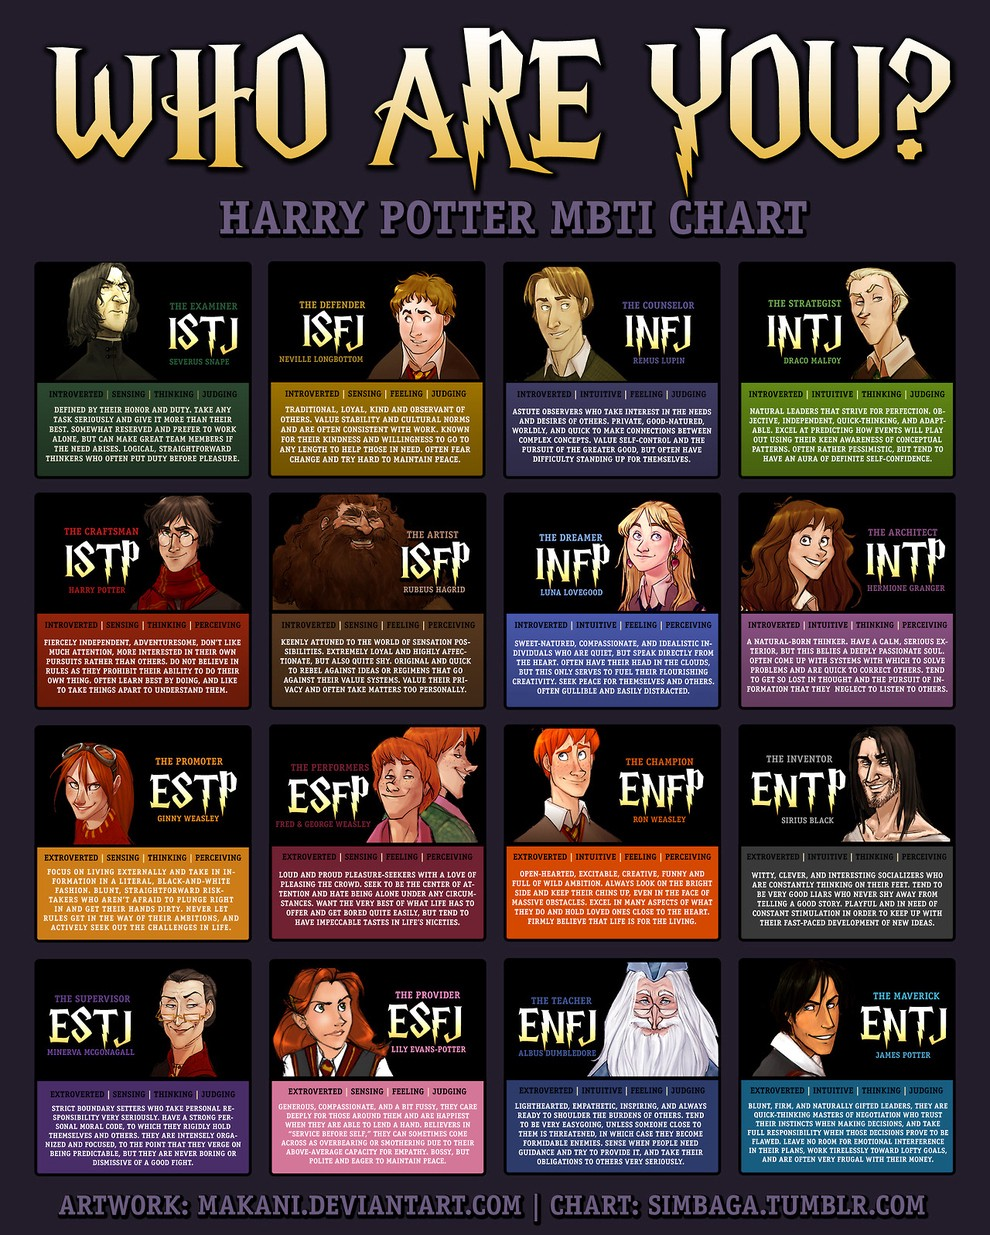 Myers Briggs is much more interesting if you're a wizard